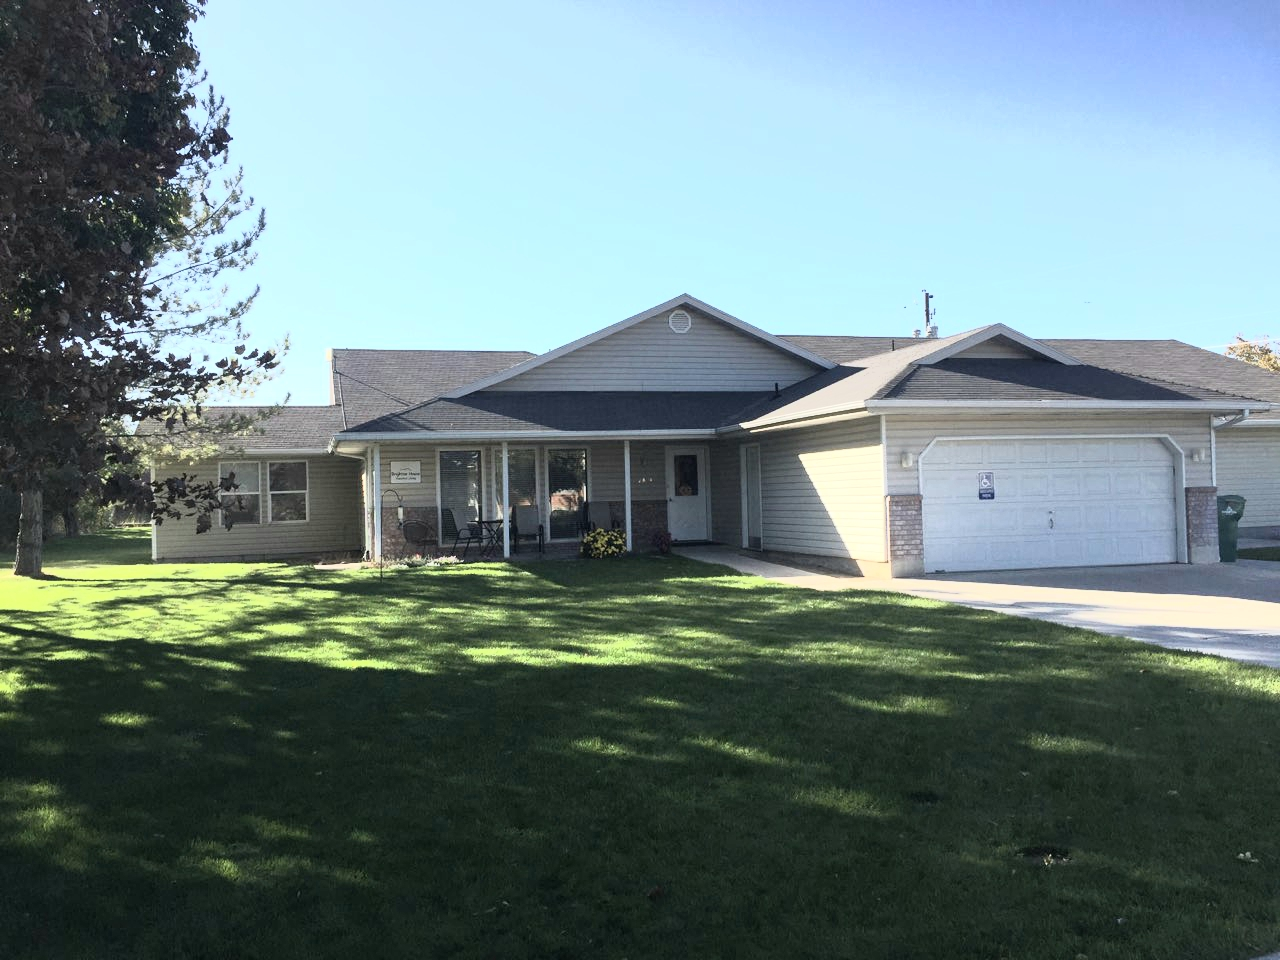 Brighton House assisted living facility in Riverton, Utah